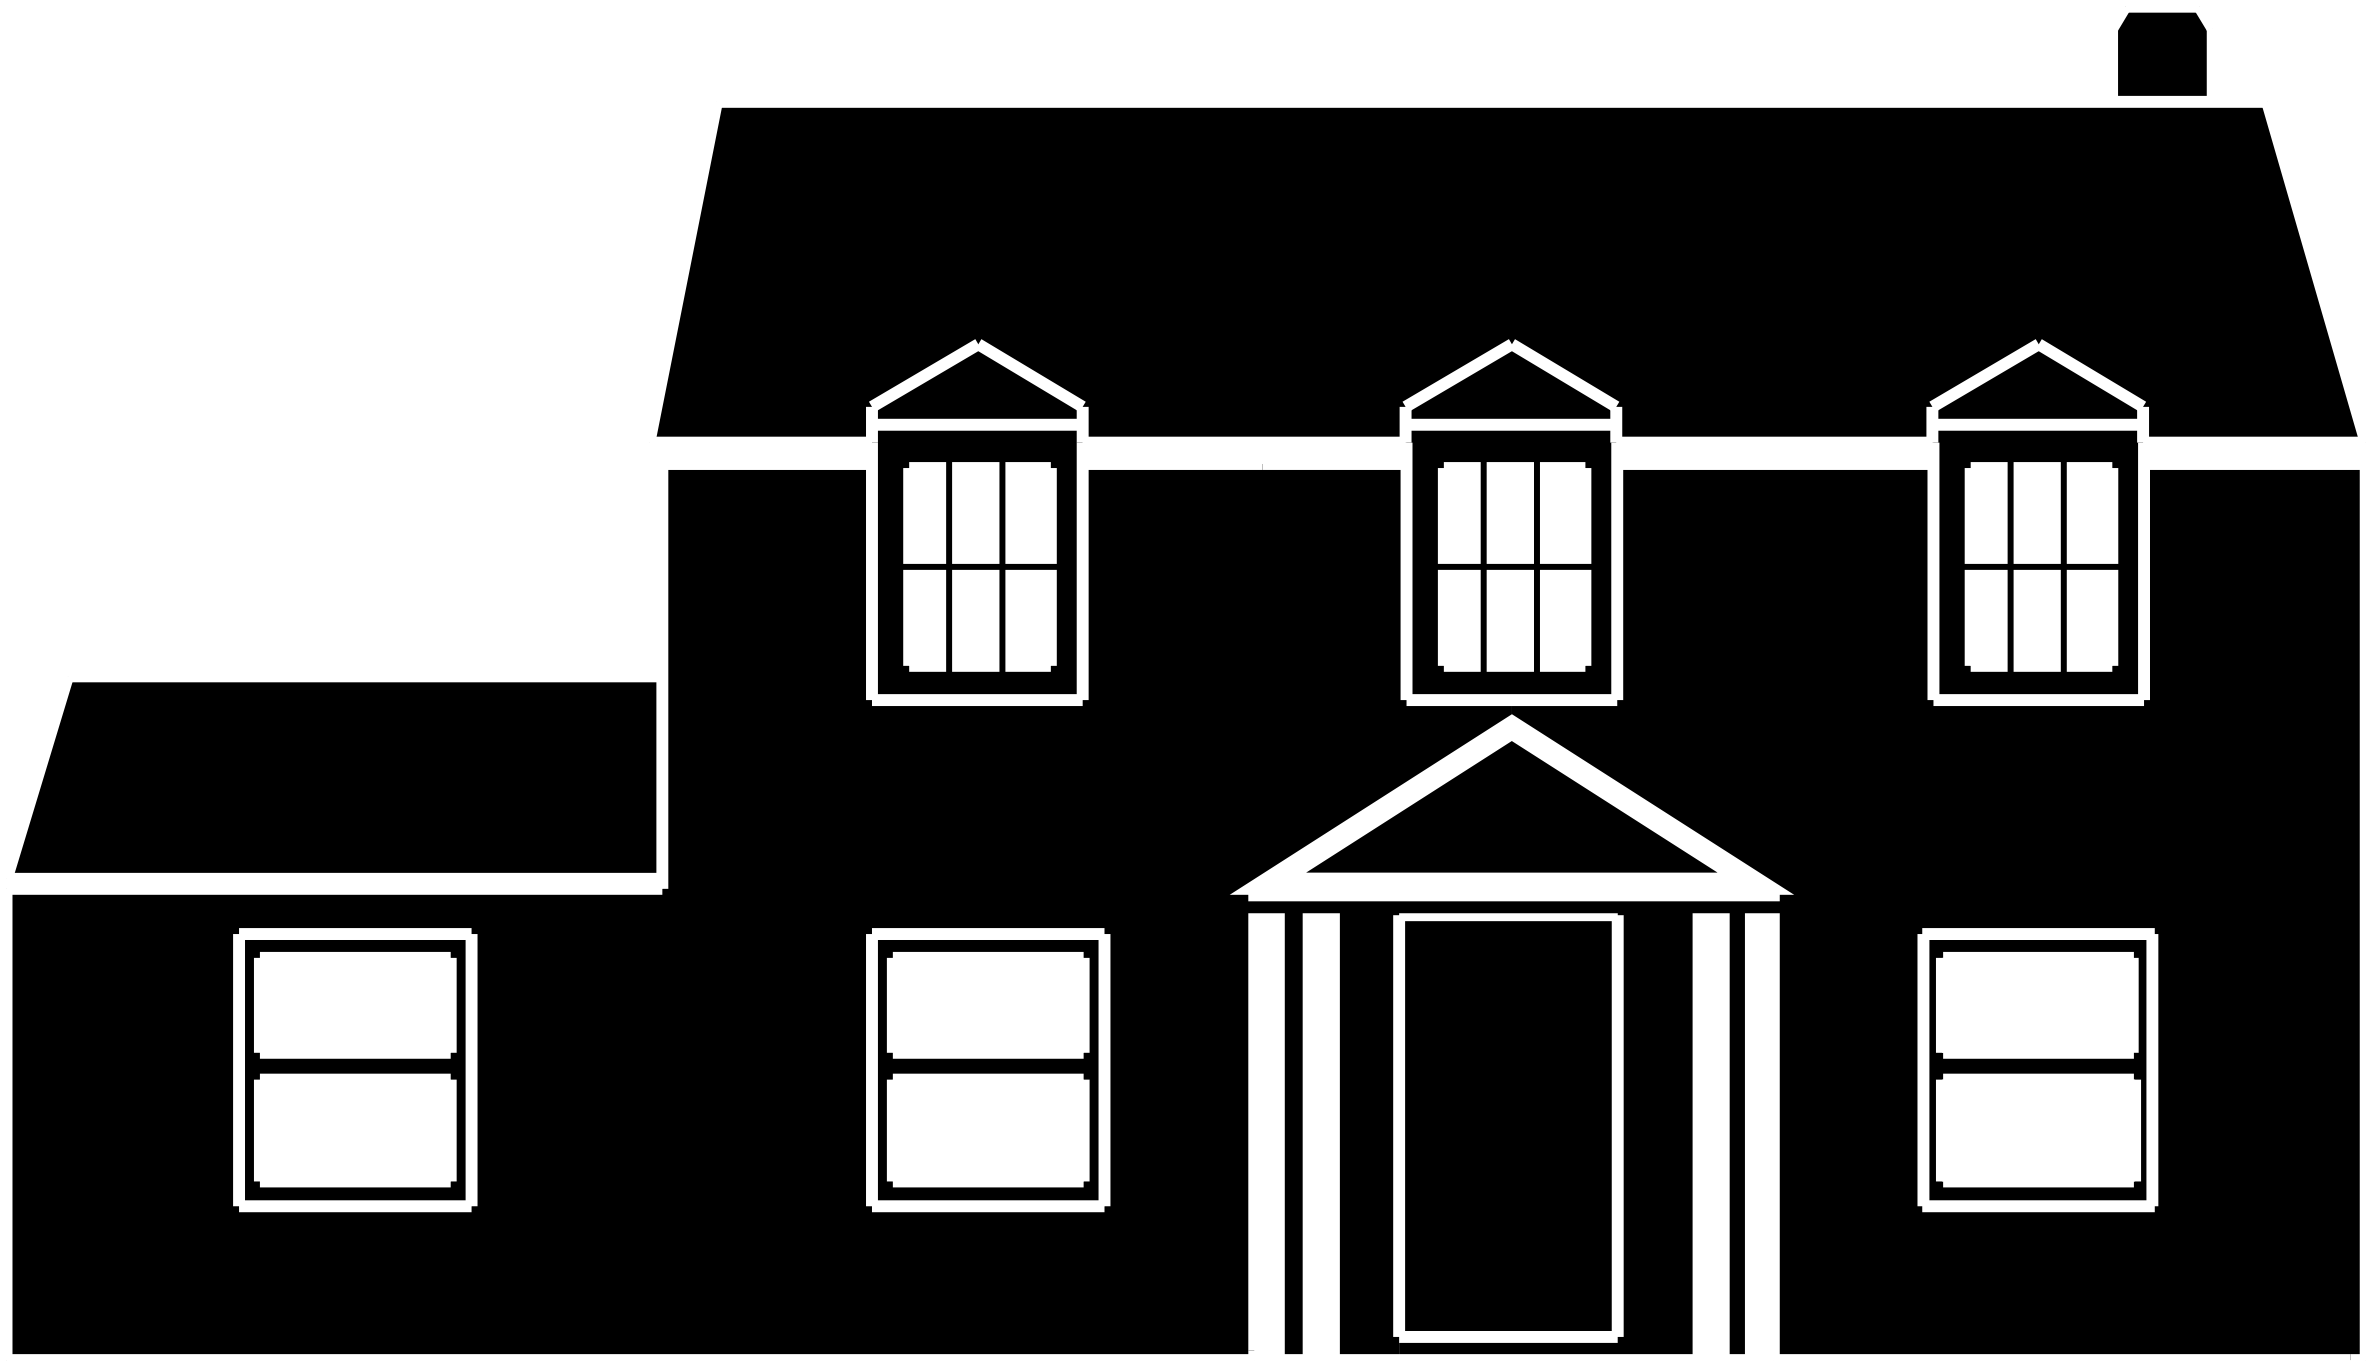 House silhouette png. Black and white icons